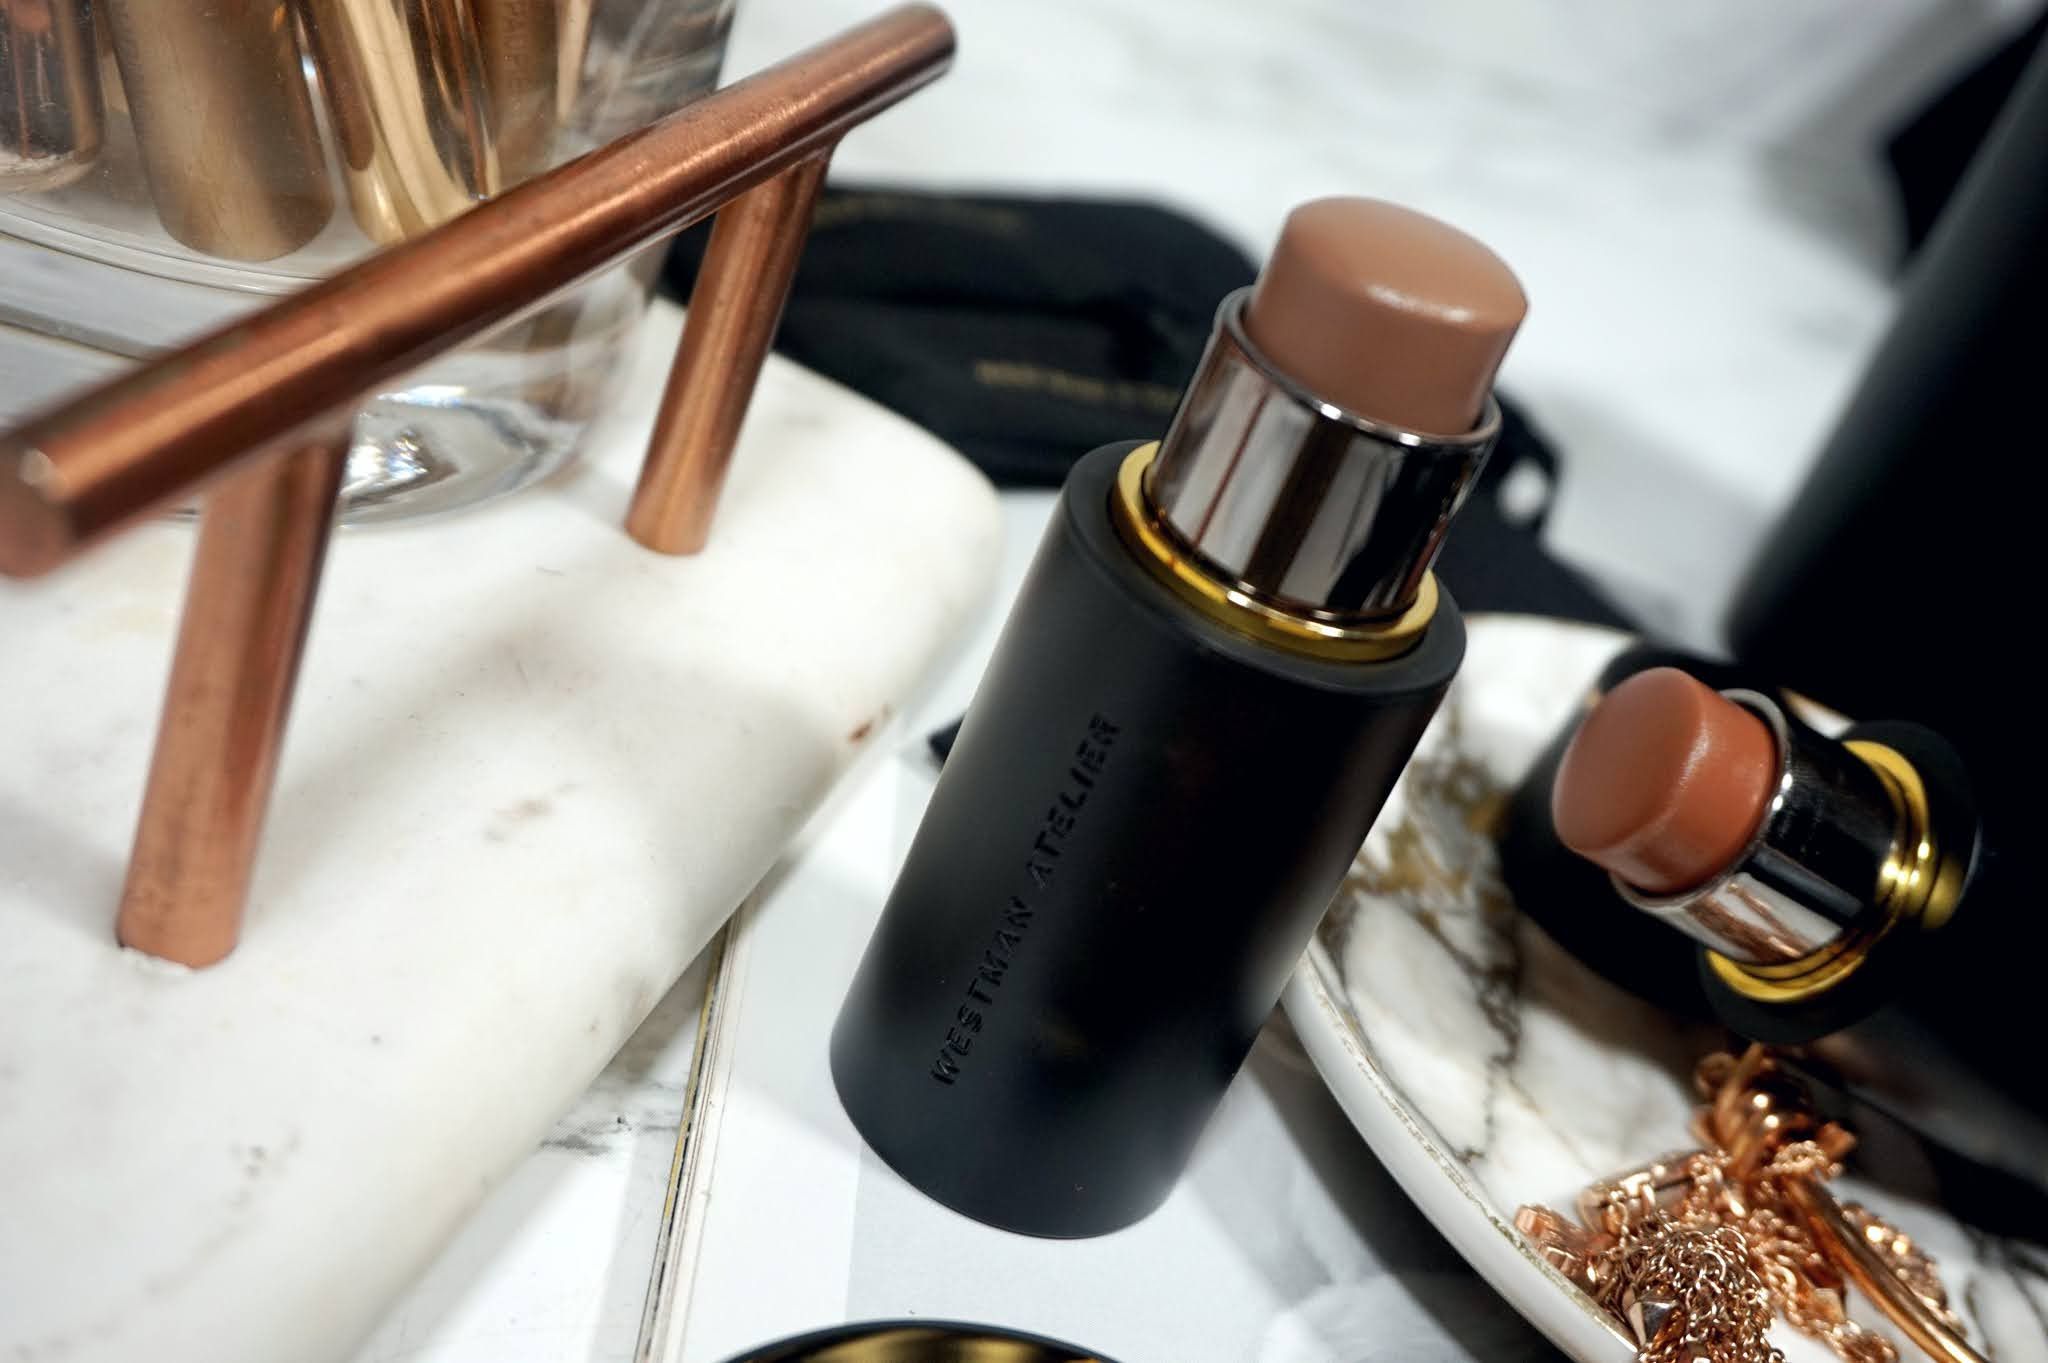 Westman Atelier Face Trace Cream Contour Stick Review and Swatches